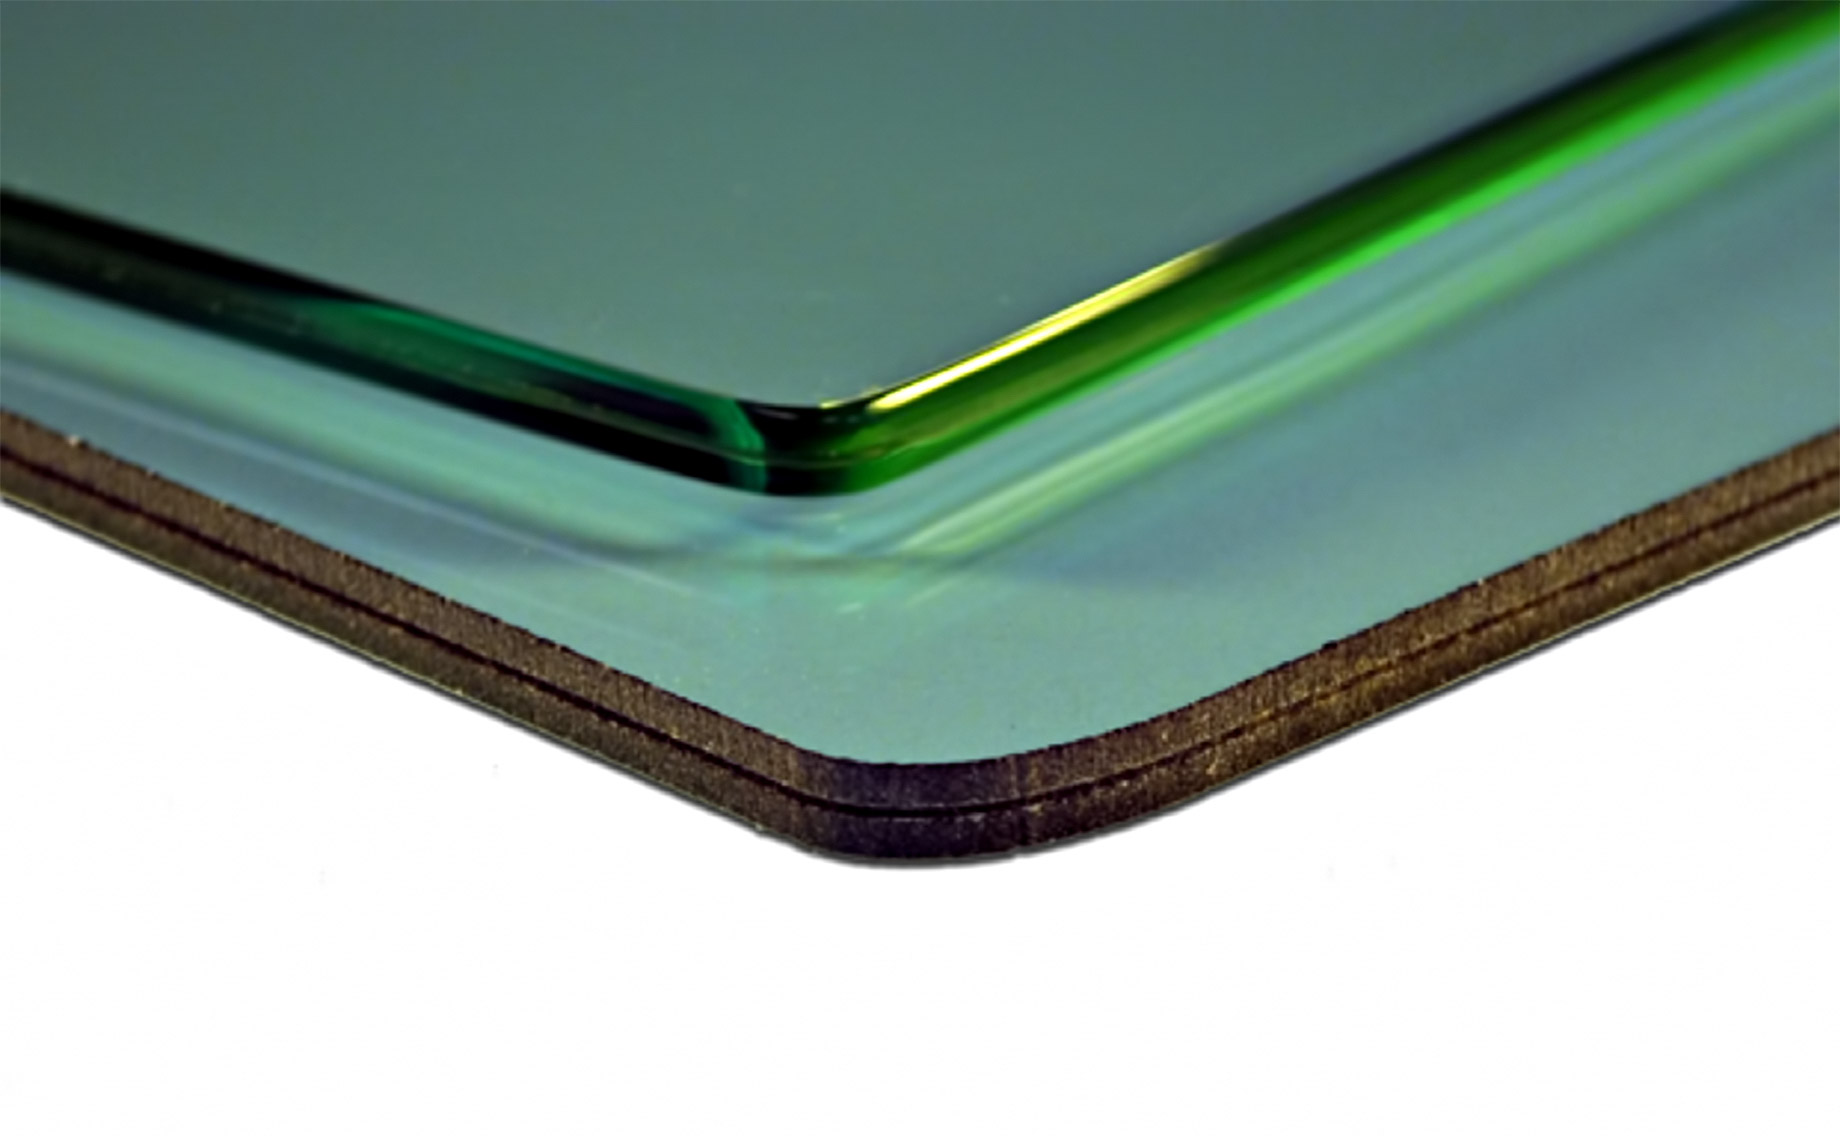 Laminated Glass - Perfect for Safety Purposes and Protection against Harmful Rays